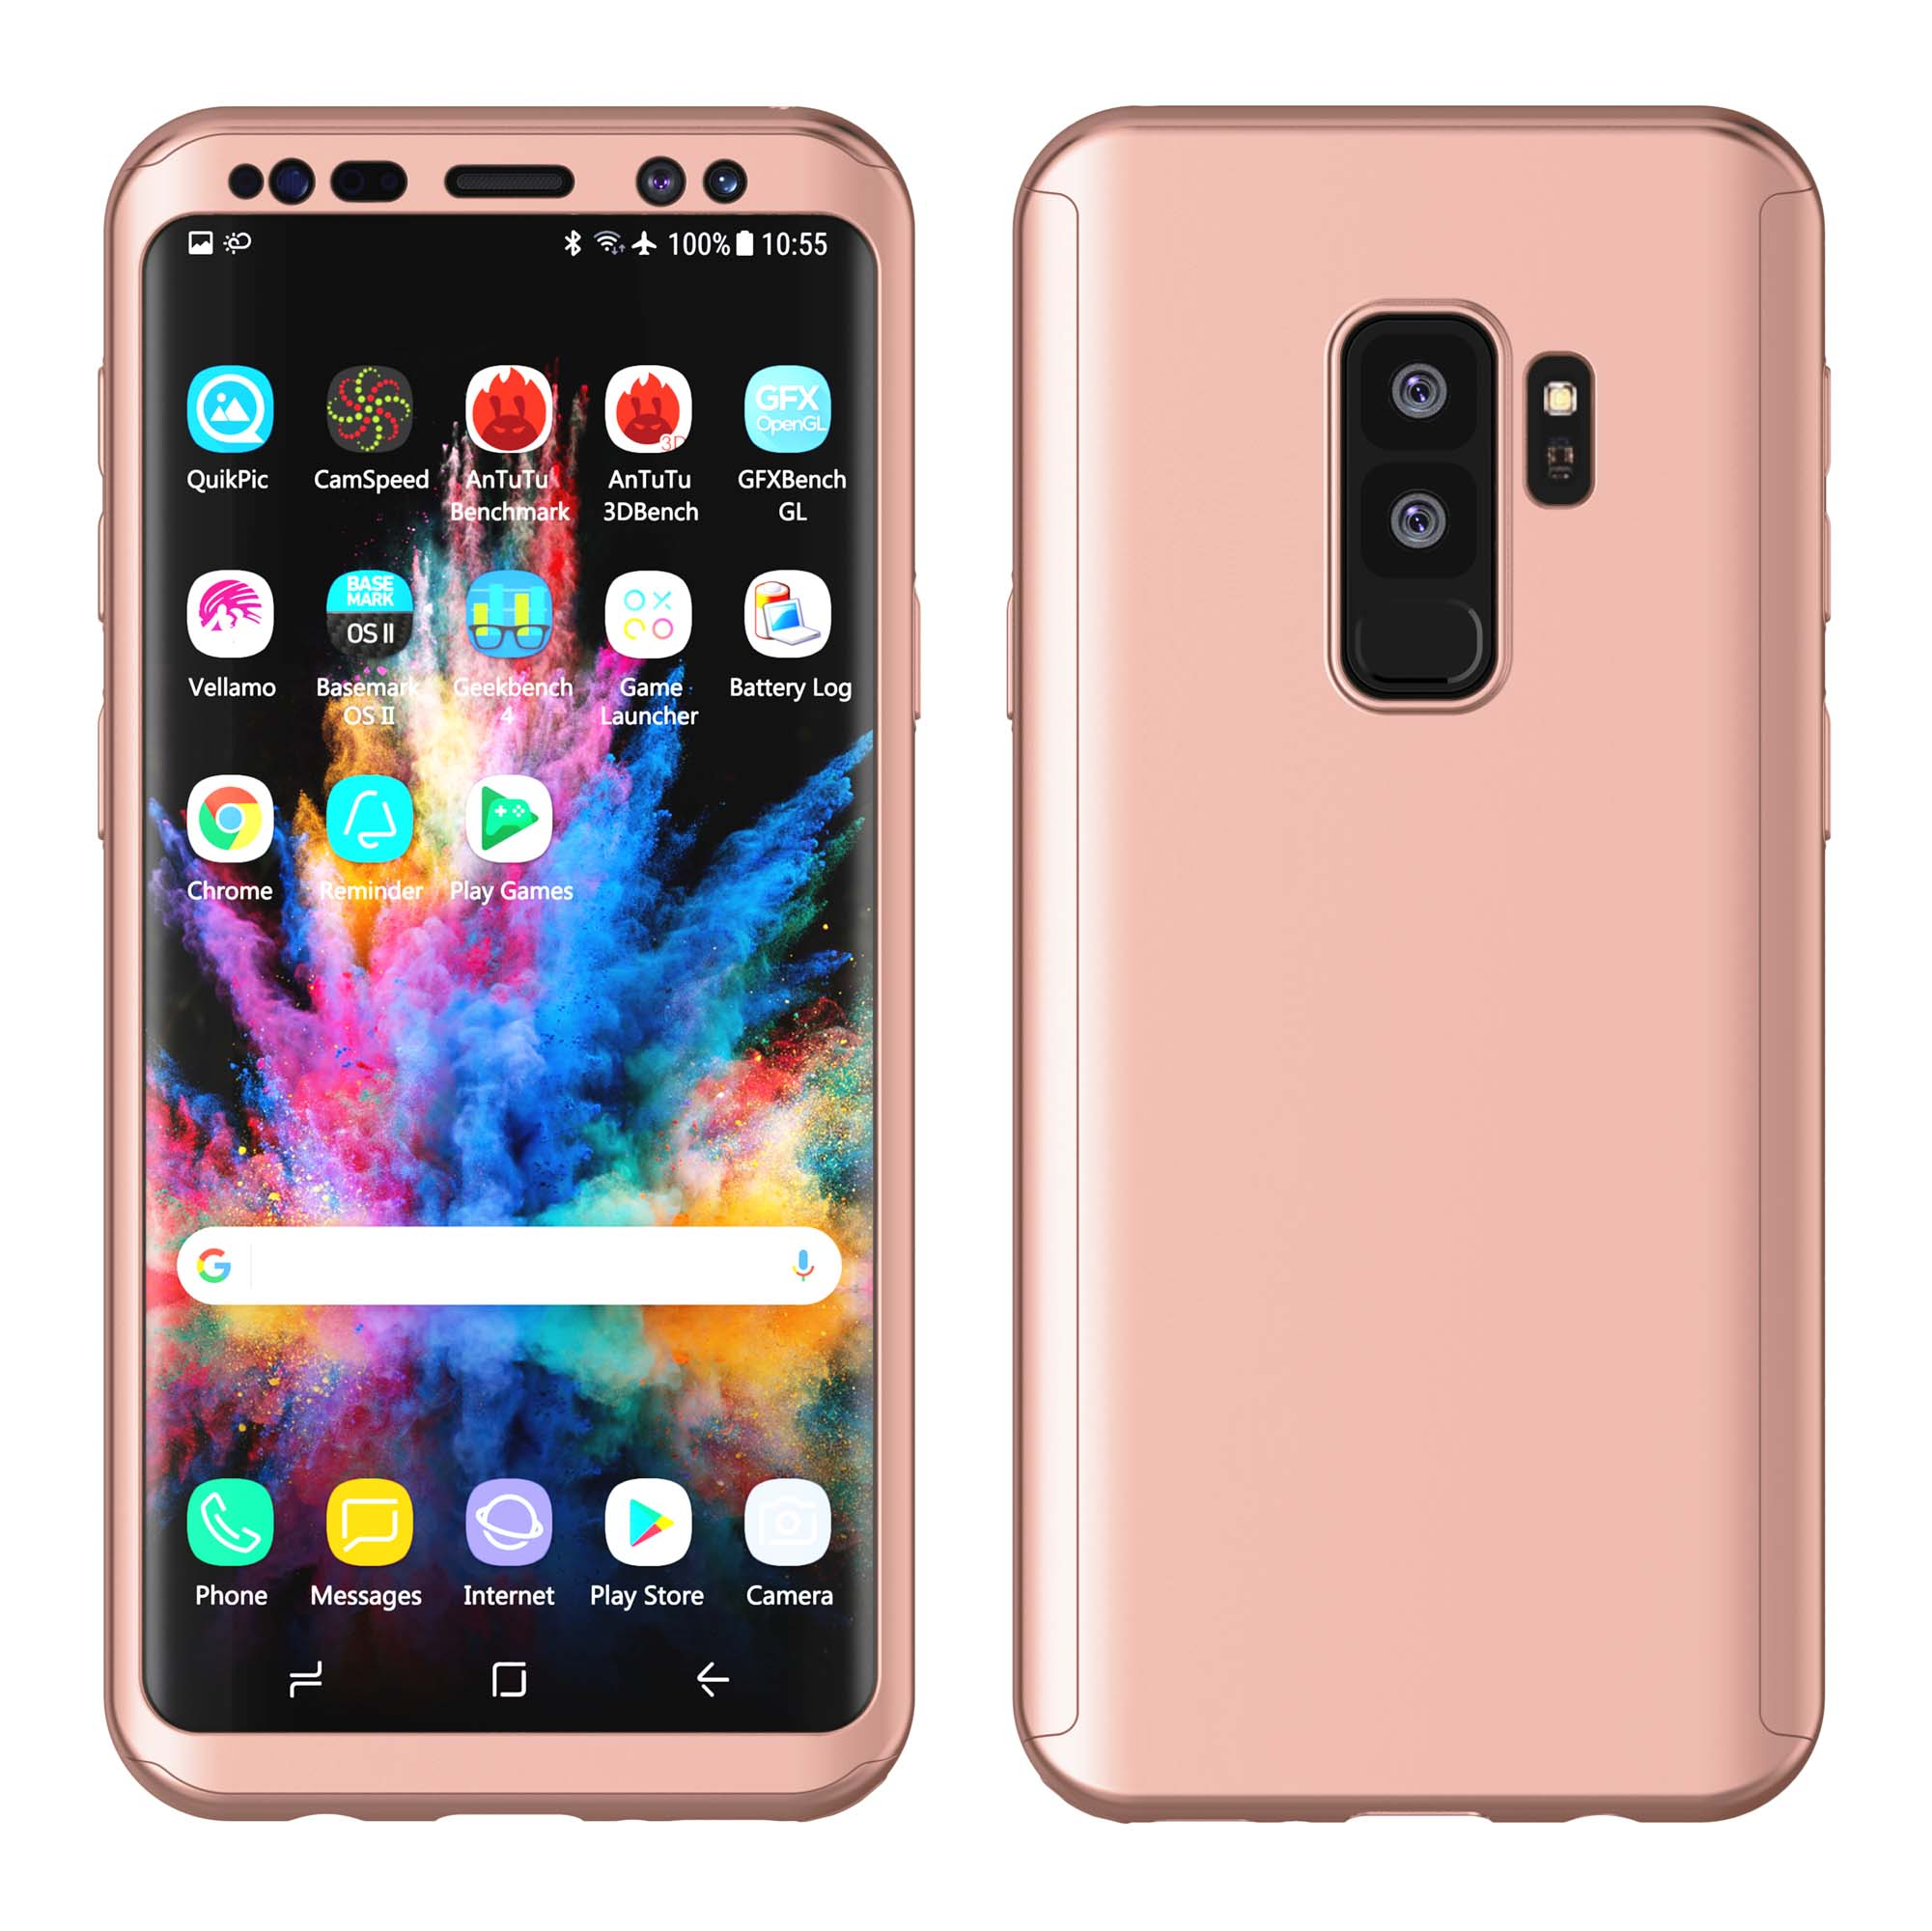 """Njjex Case For 5.8"""" Galaxy S9 / 6.2"""" Galaxy S9 Plus, Njjex (Rose Gold)Ultra Thin Full Body Coverage Protection Scratch Proof Hard Hybrid Plastic Case Cover Shell For 2018 Samsung SM-G960 / SM-G965"""